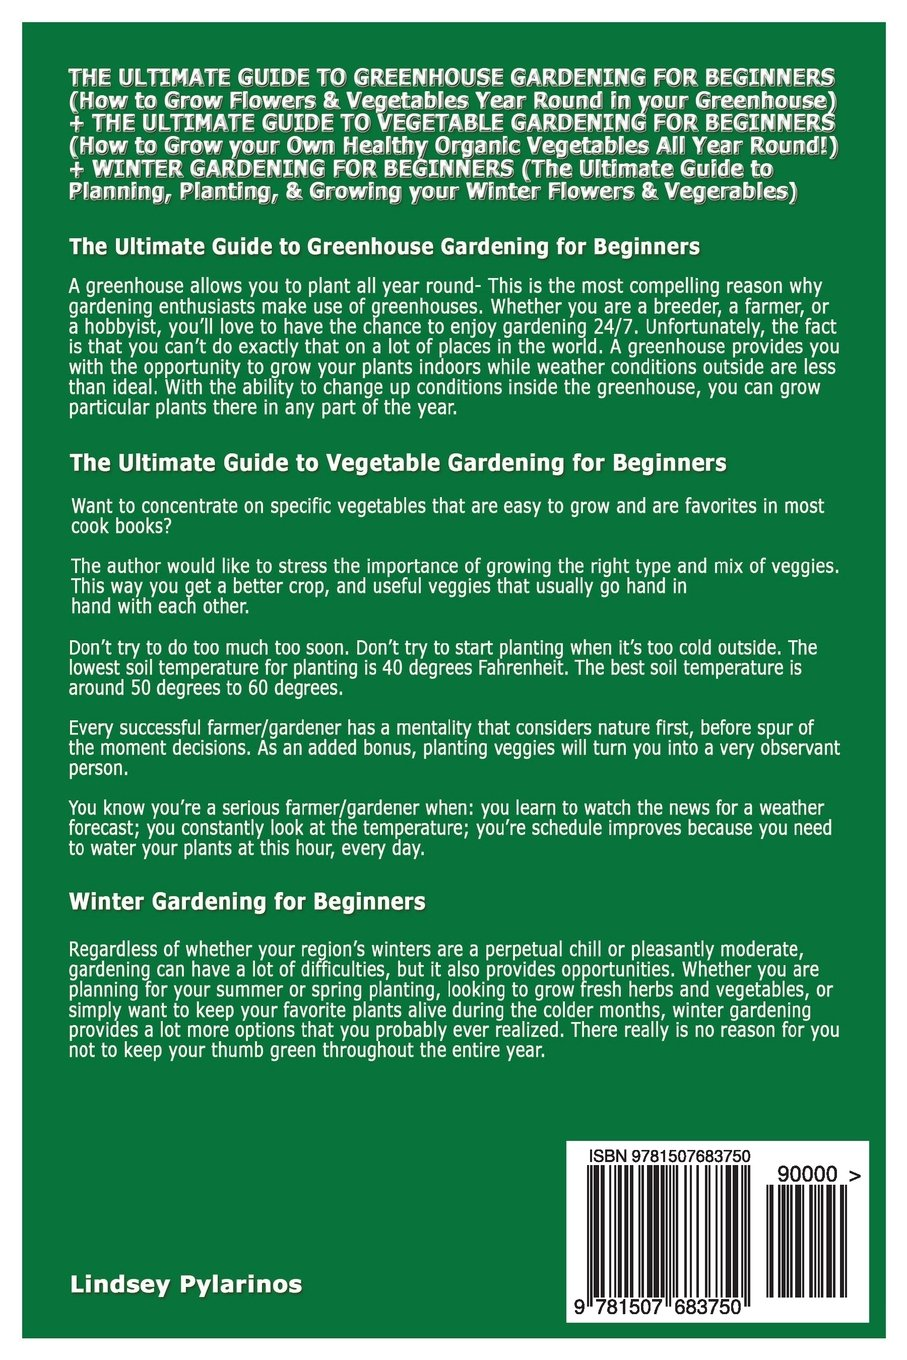 the ultimate guide to greenhouse gardening for beginners u0026 the